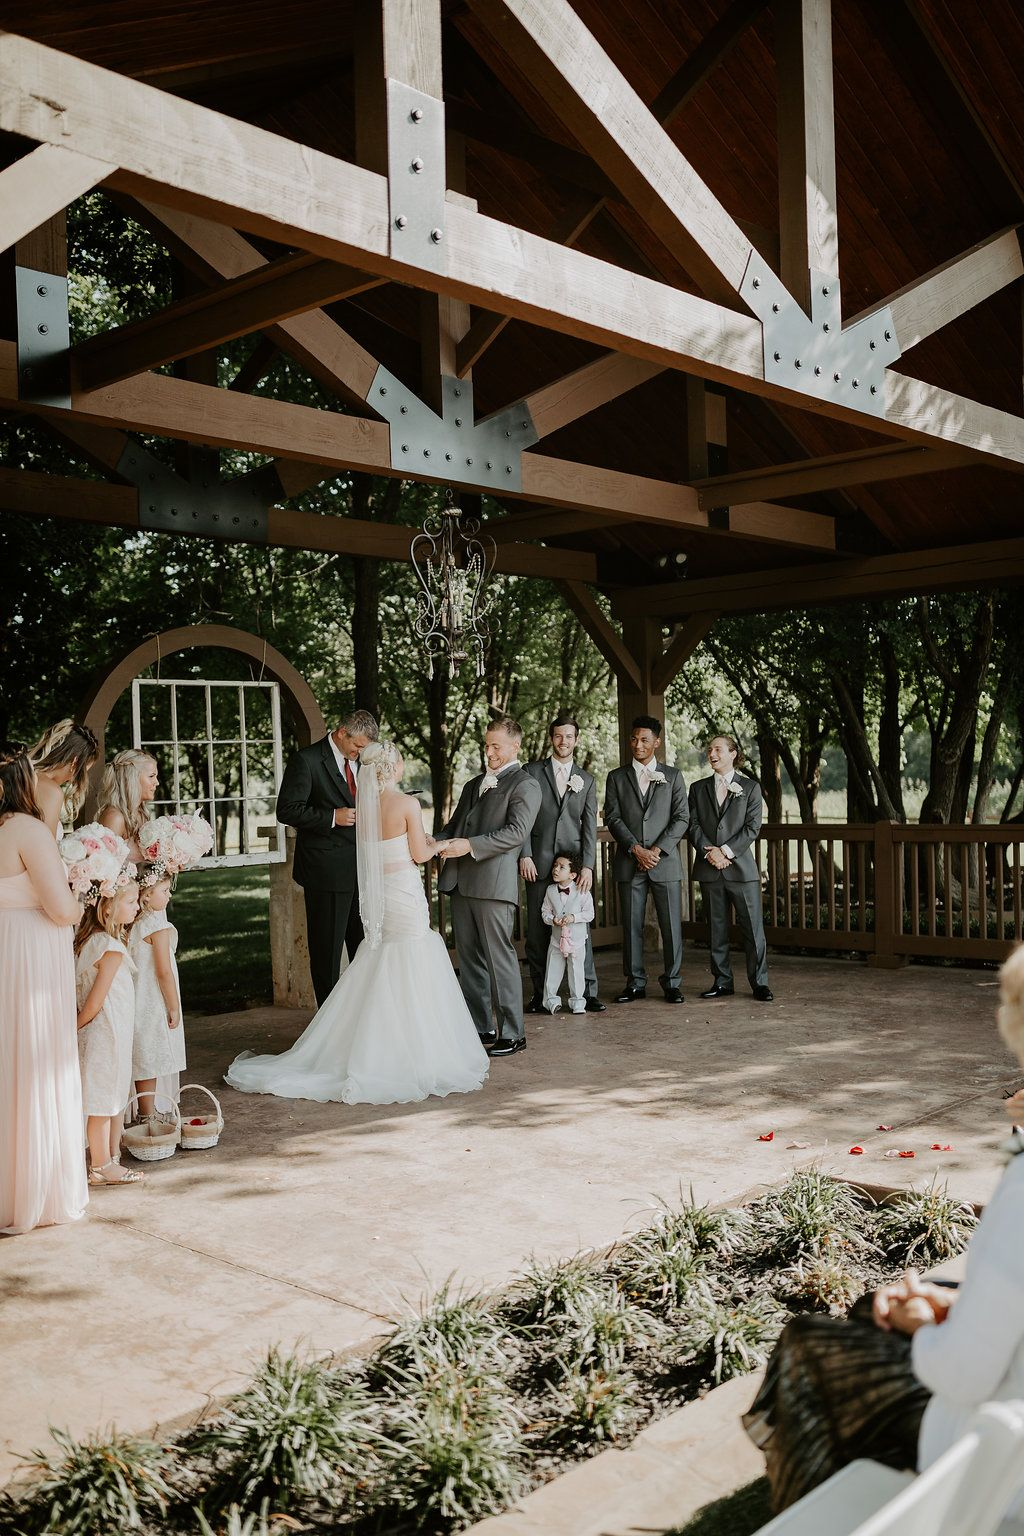 Outdoor Oklahoma Wedding Venue Outdoor Okc Wedding Venue Outdoor Oklahoma City Wedding City Wedding Venues Oklahoma Wedding Venues Summer Wedding Outdoor